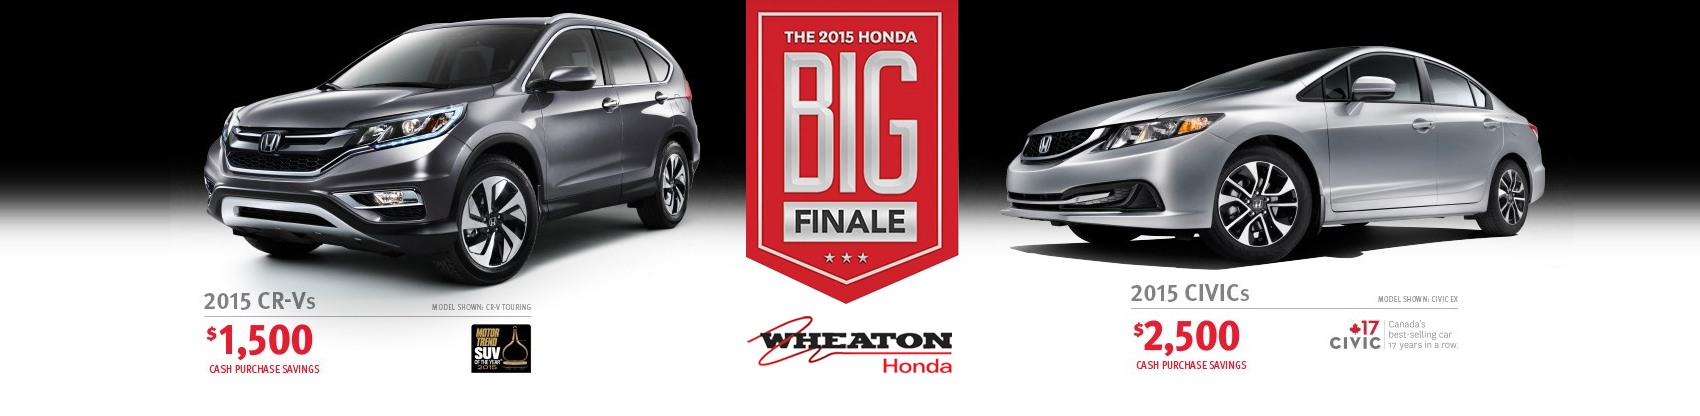 Wheaton Honda 2015 model blowout event